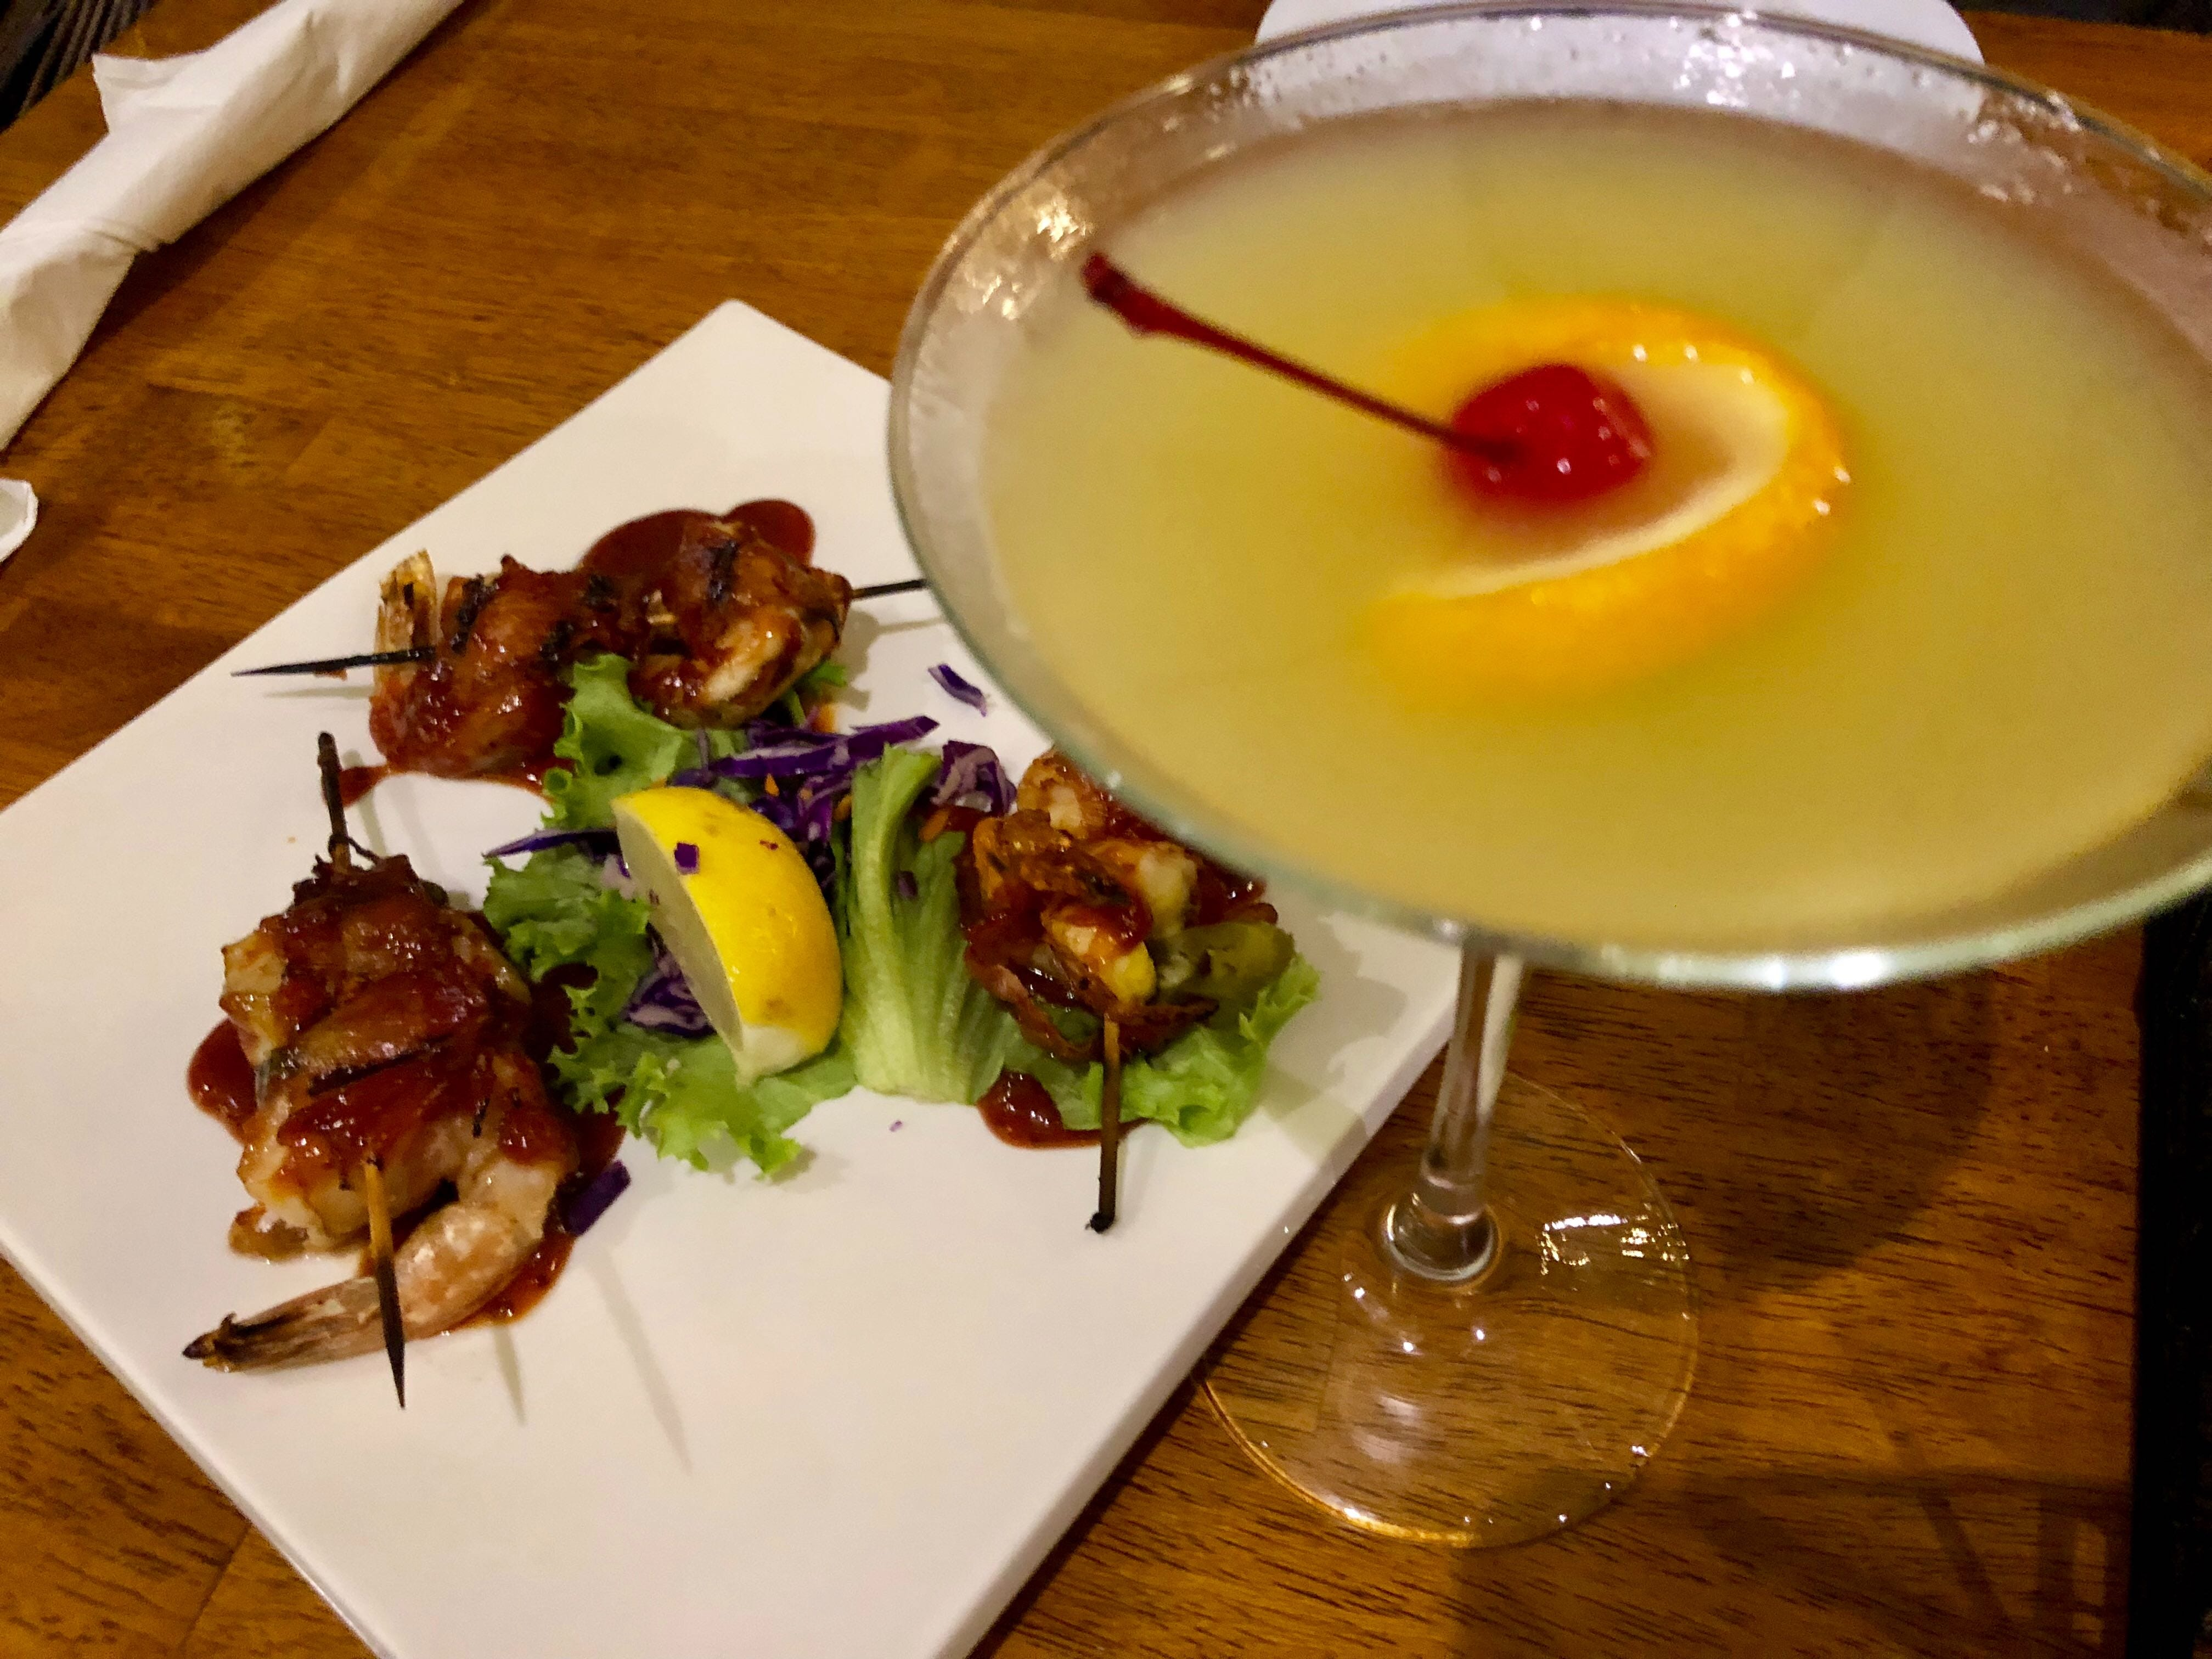 Shrimp stuffed with jalapeno slivers, wrapped in bacon and glazed in barbecue sauce at  Alice Sweetwater's Bar & Grille. A white wine sangria martini is the restaurant's signature drink.